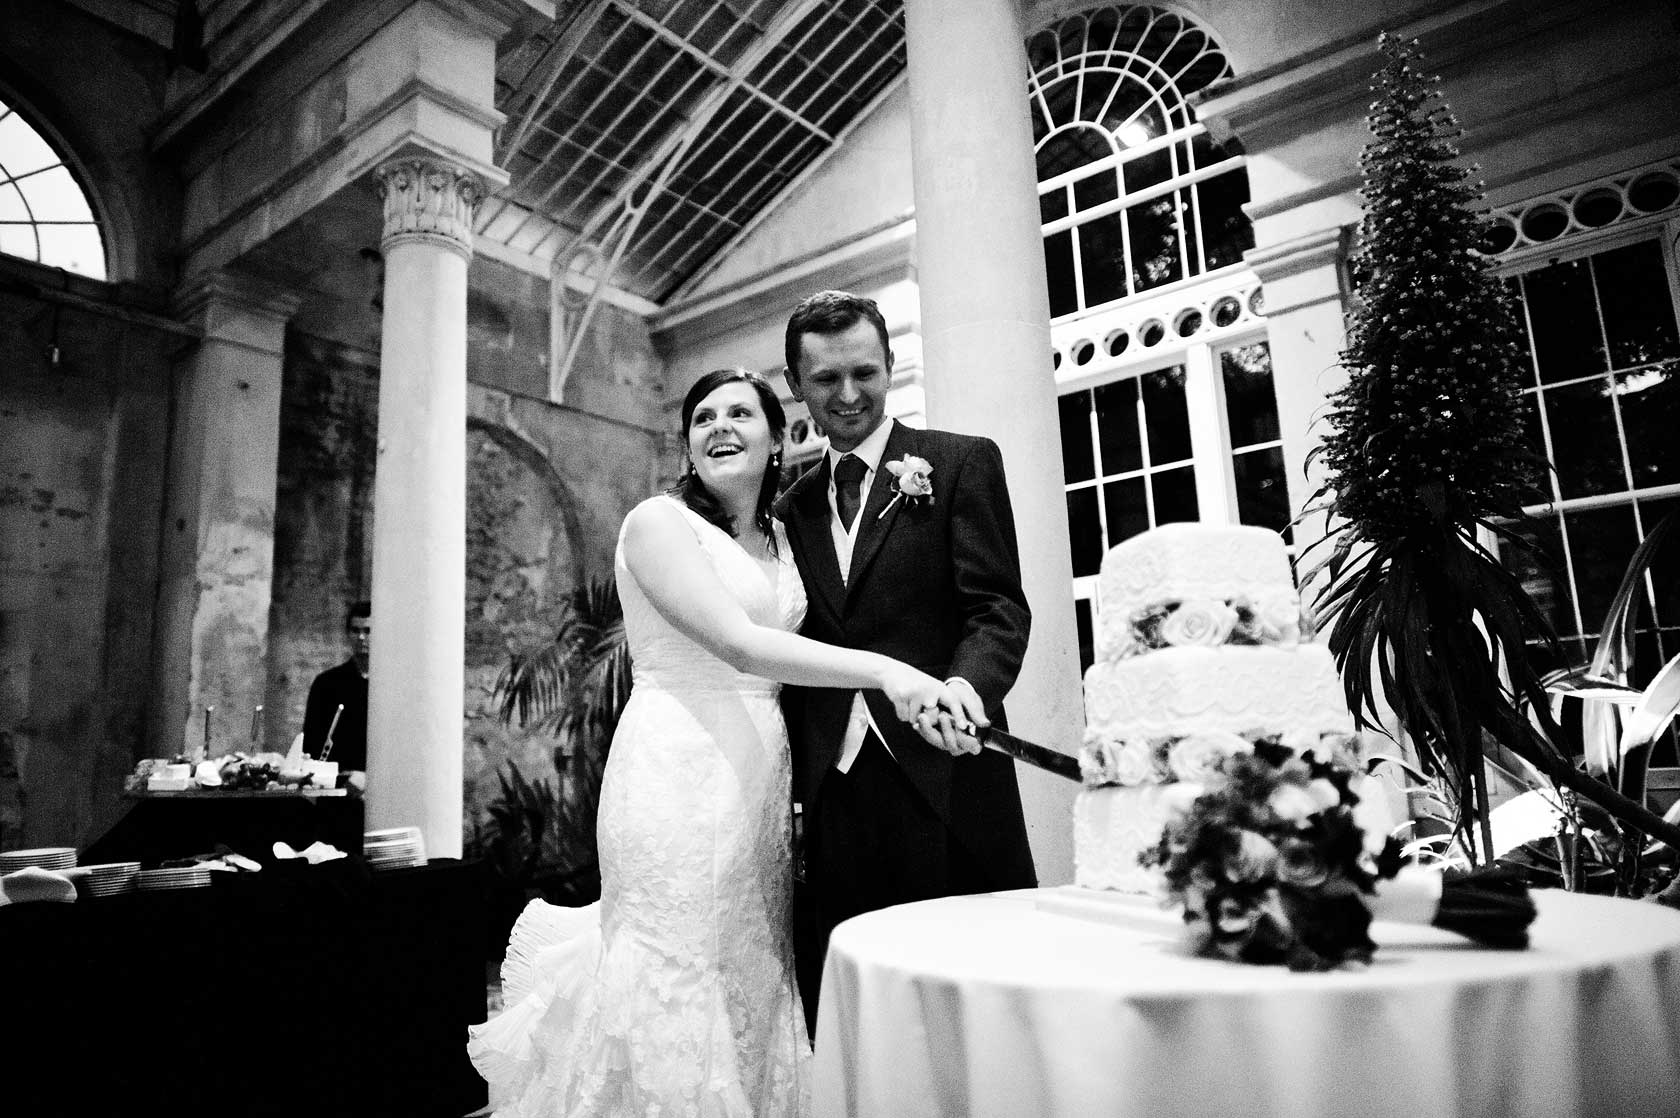 Syon Park Wedding in London